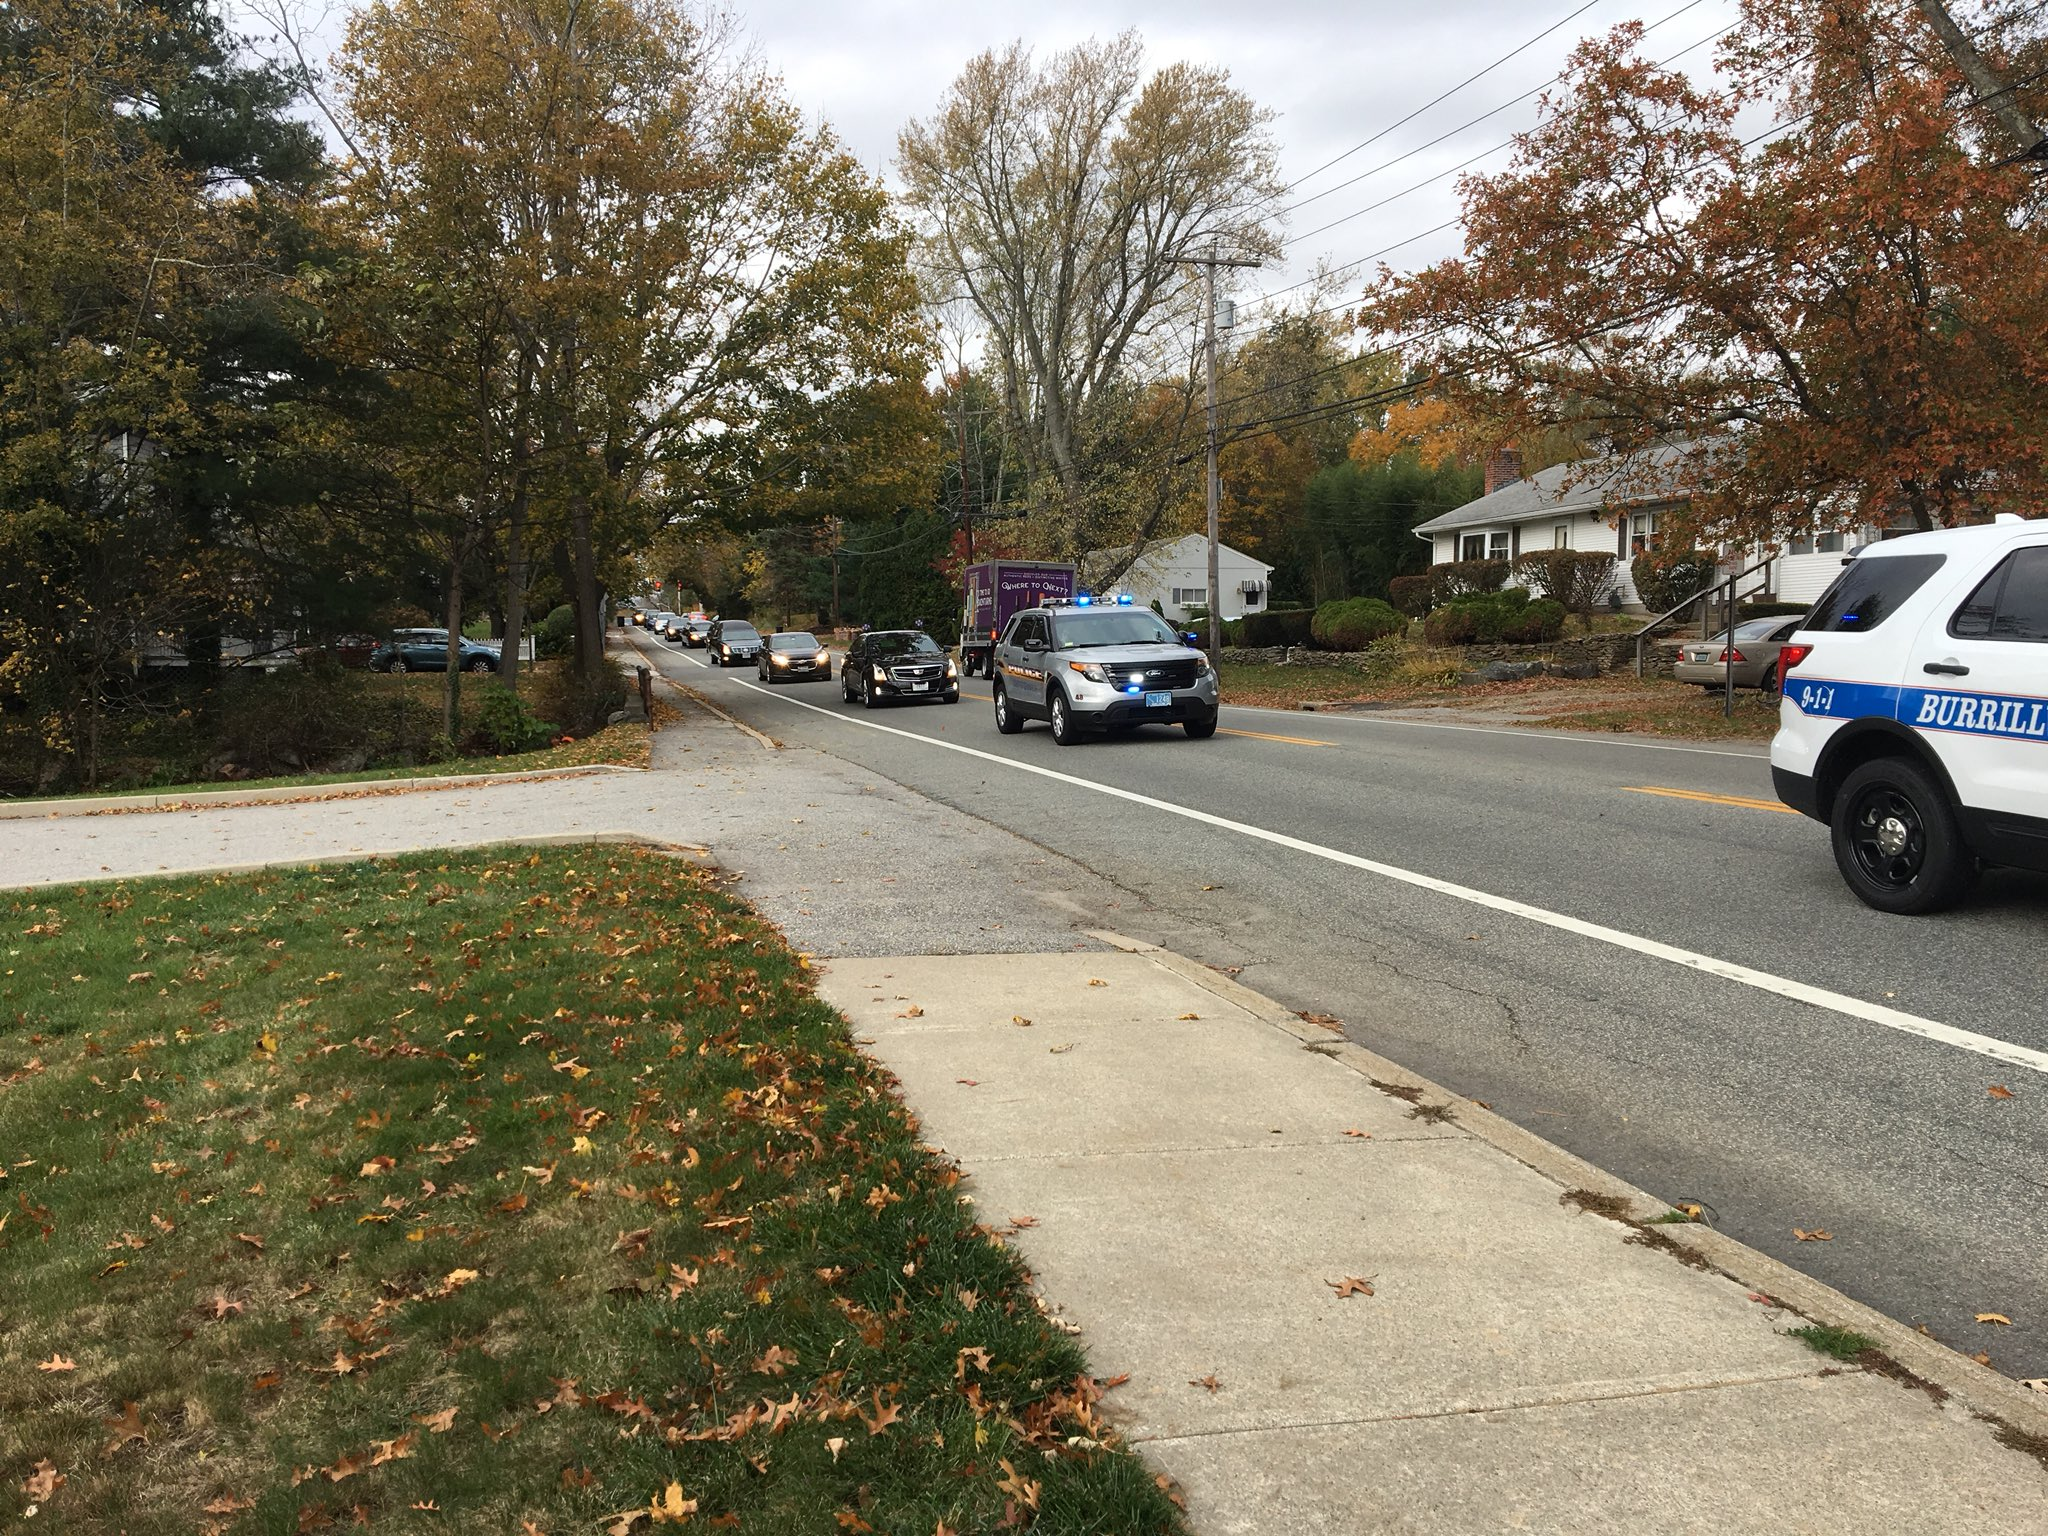 The funeral procession for Gianna Cierra passes the East Greenwich Police Department, where Gianna's father is deputy chief. (WJAR)